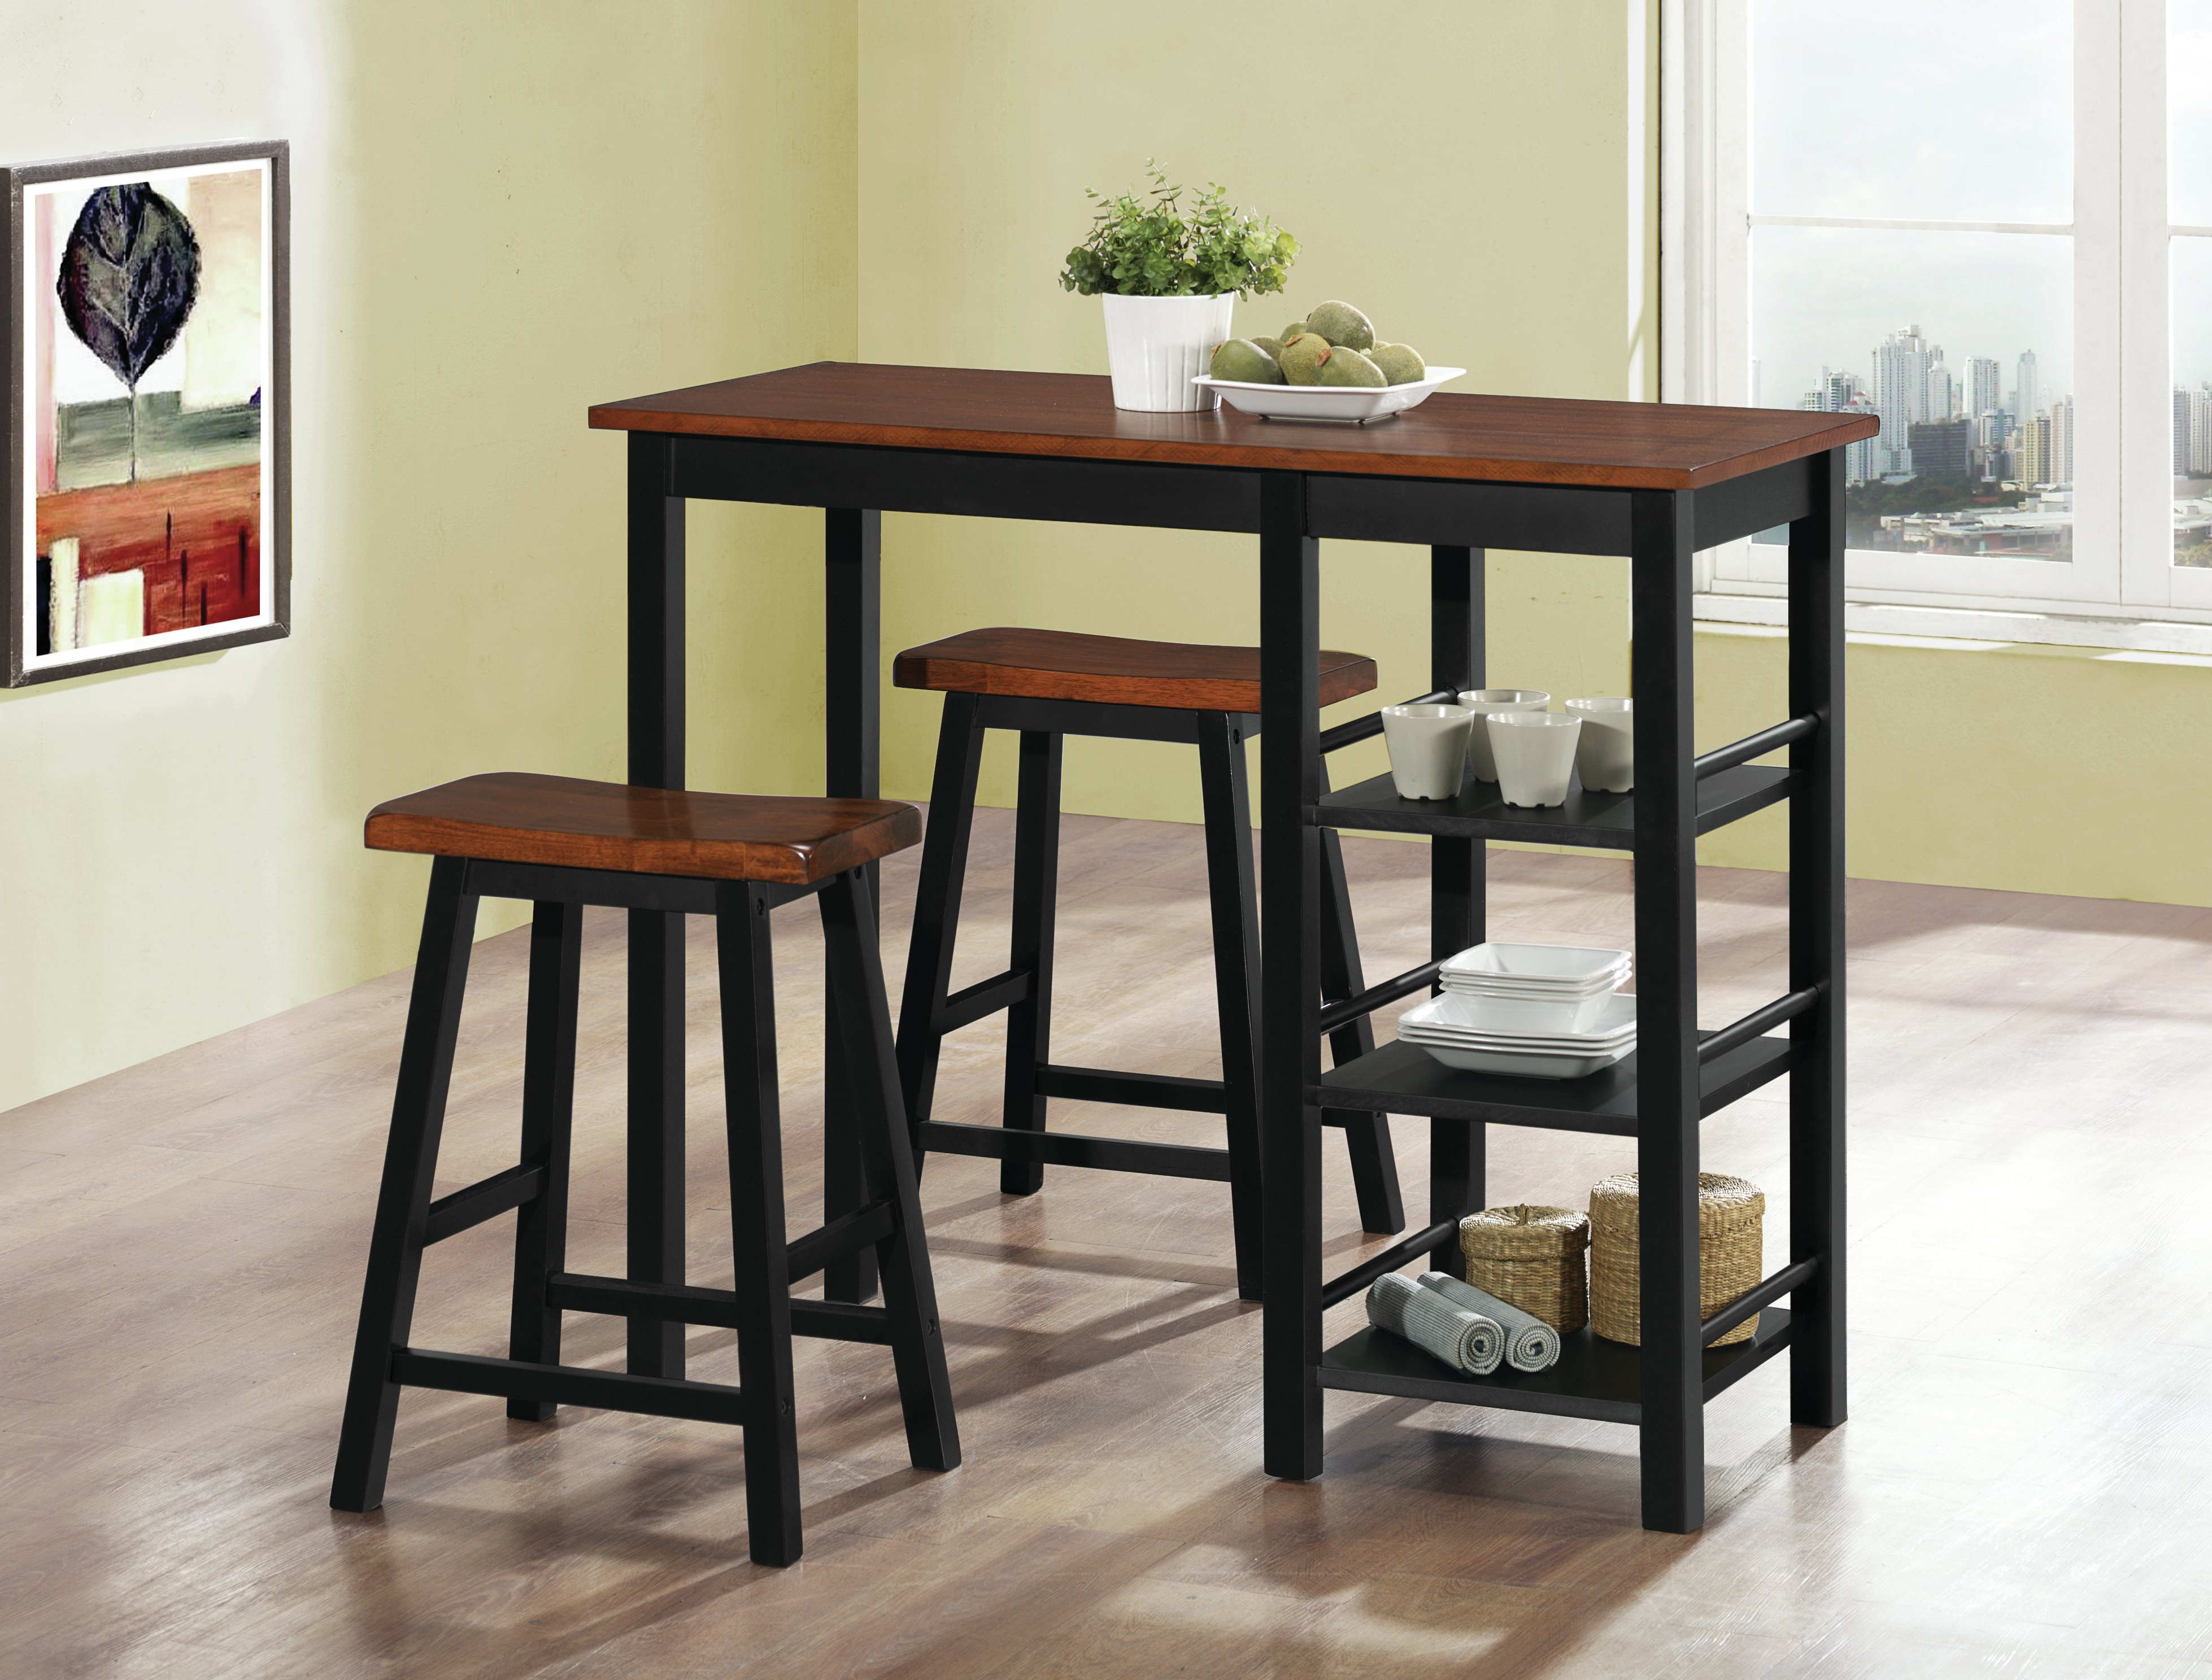 Berrios 3 Piece Counter Height Dining Set Throughout Most Recent Weatherholt Dining Tables (View 19 of 20)